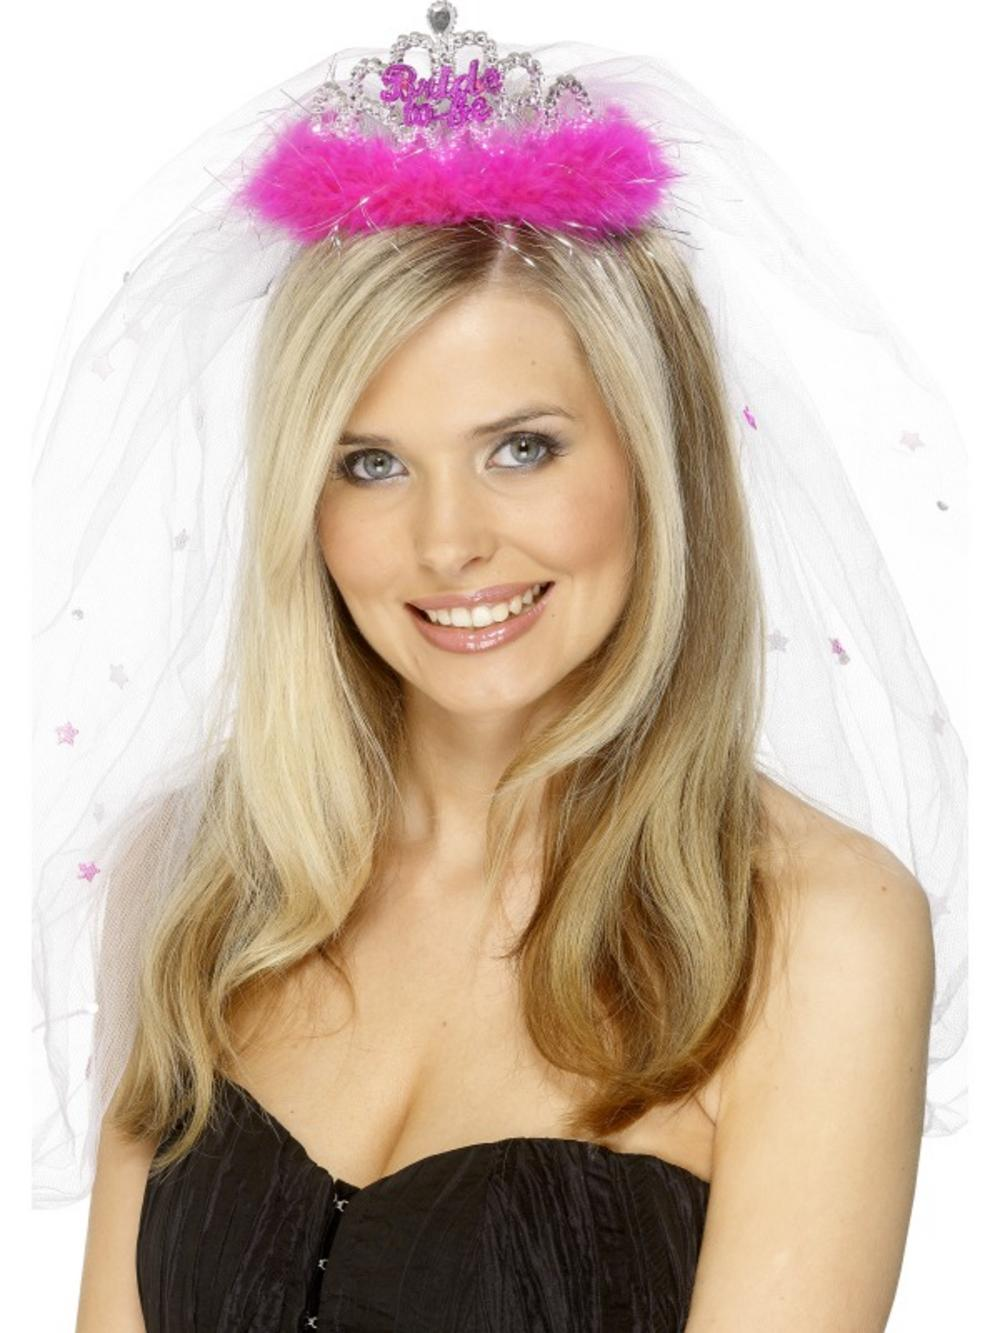 Bride to Be Tiara and Veil Hen Party